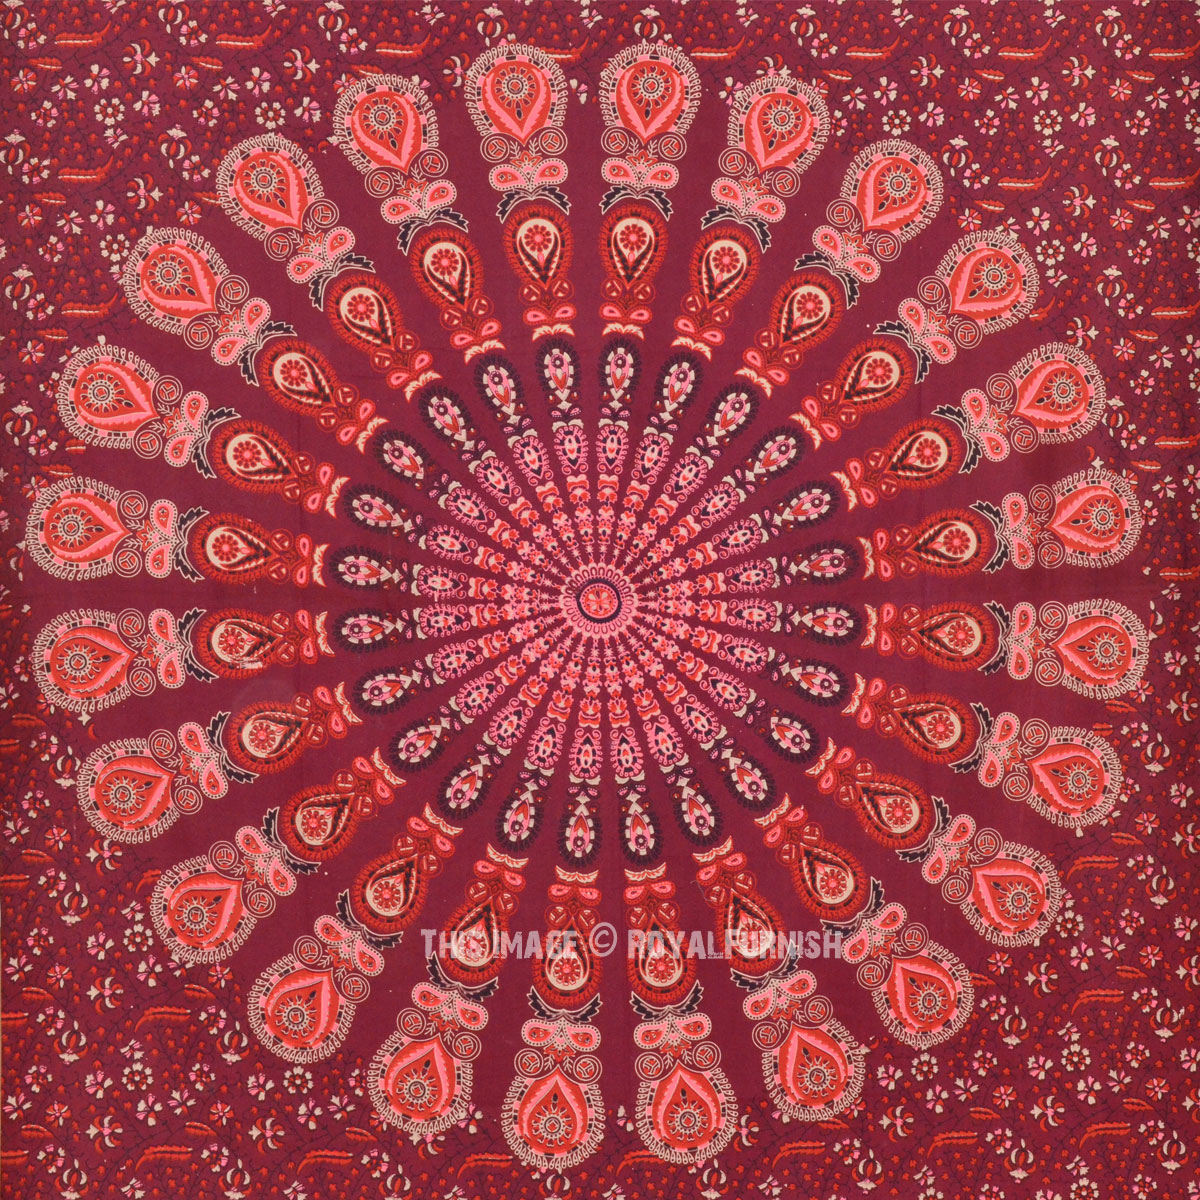 Vibrant Maroon Peacock Mandala Wall Tapestry Indian